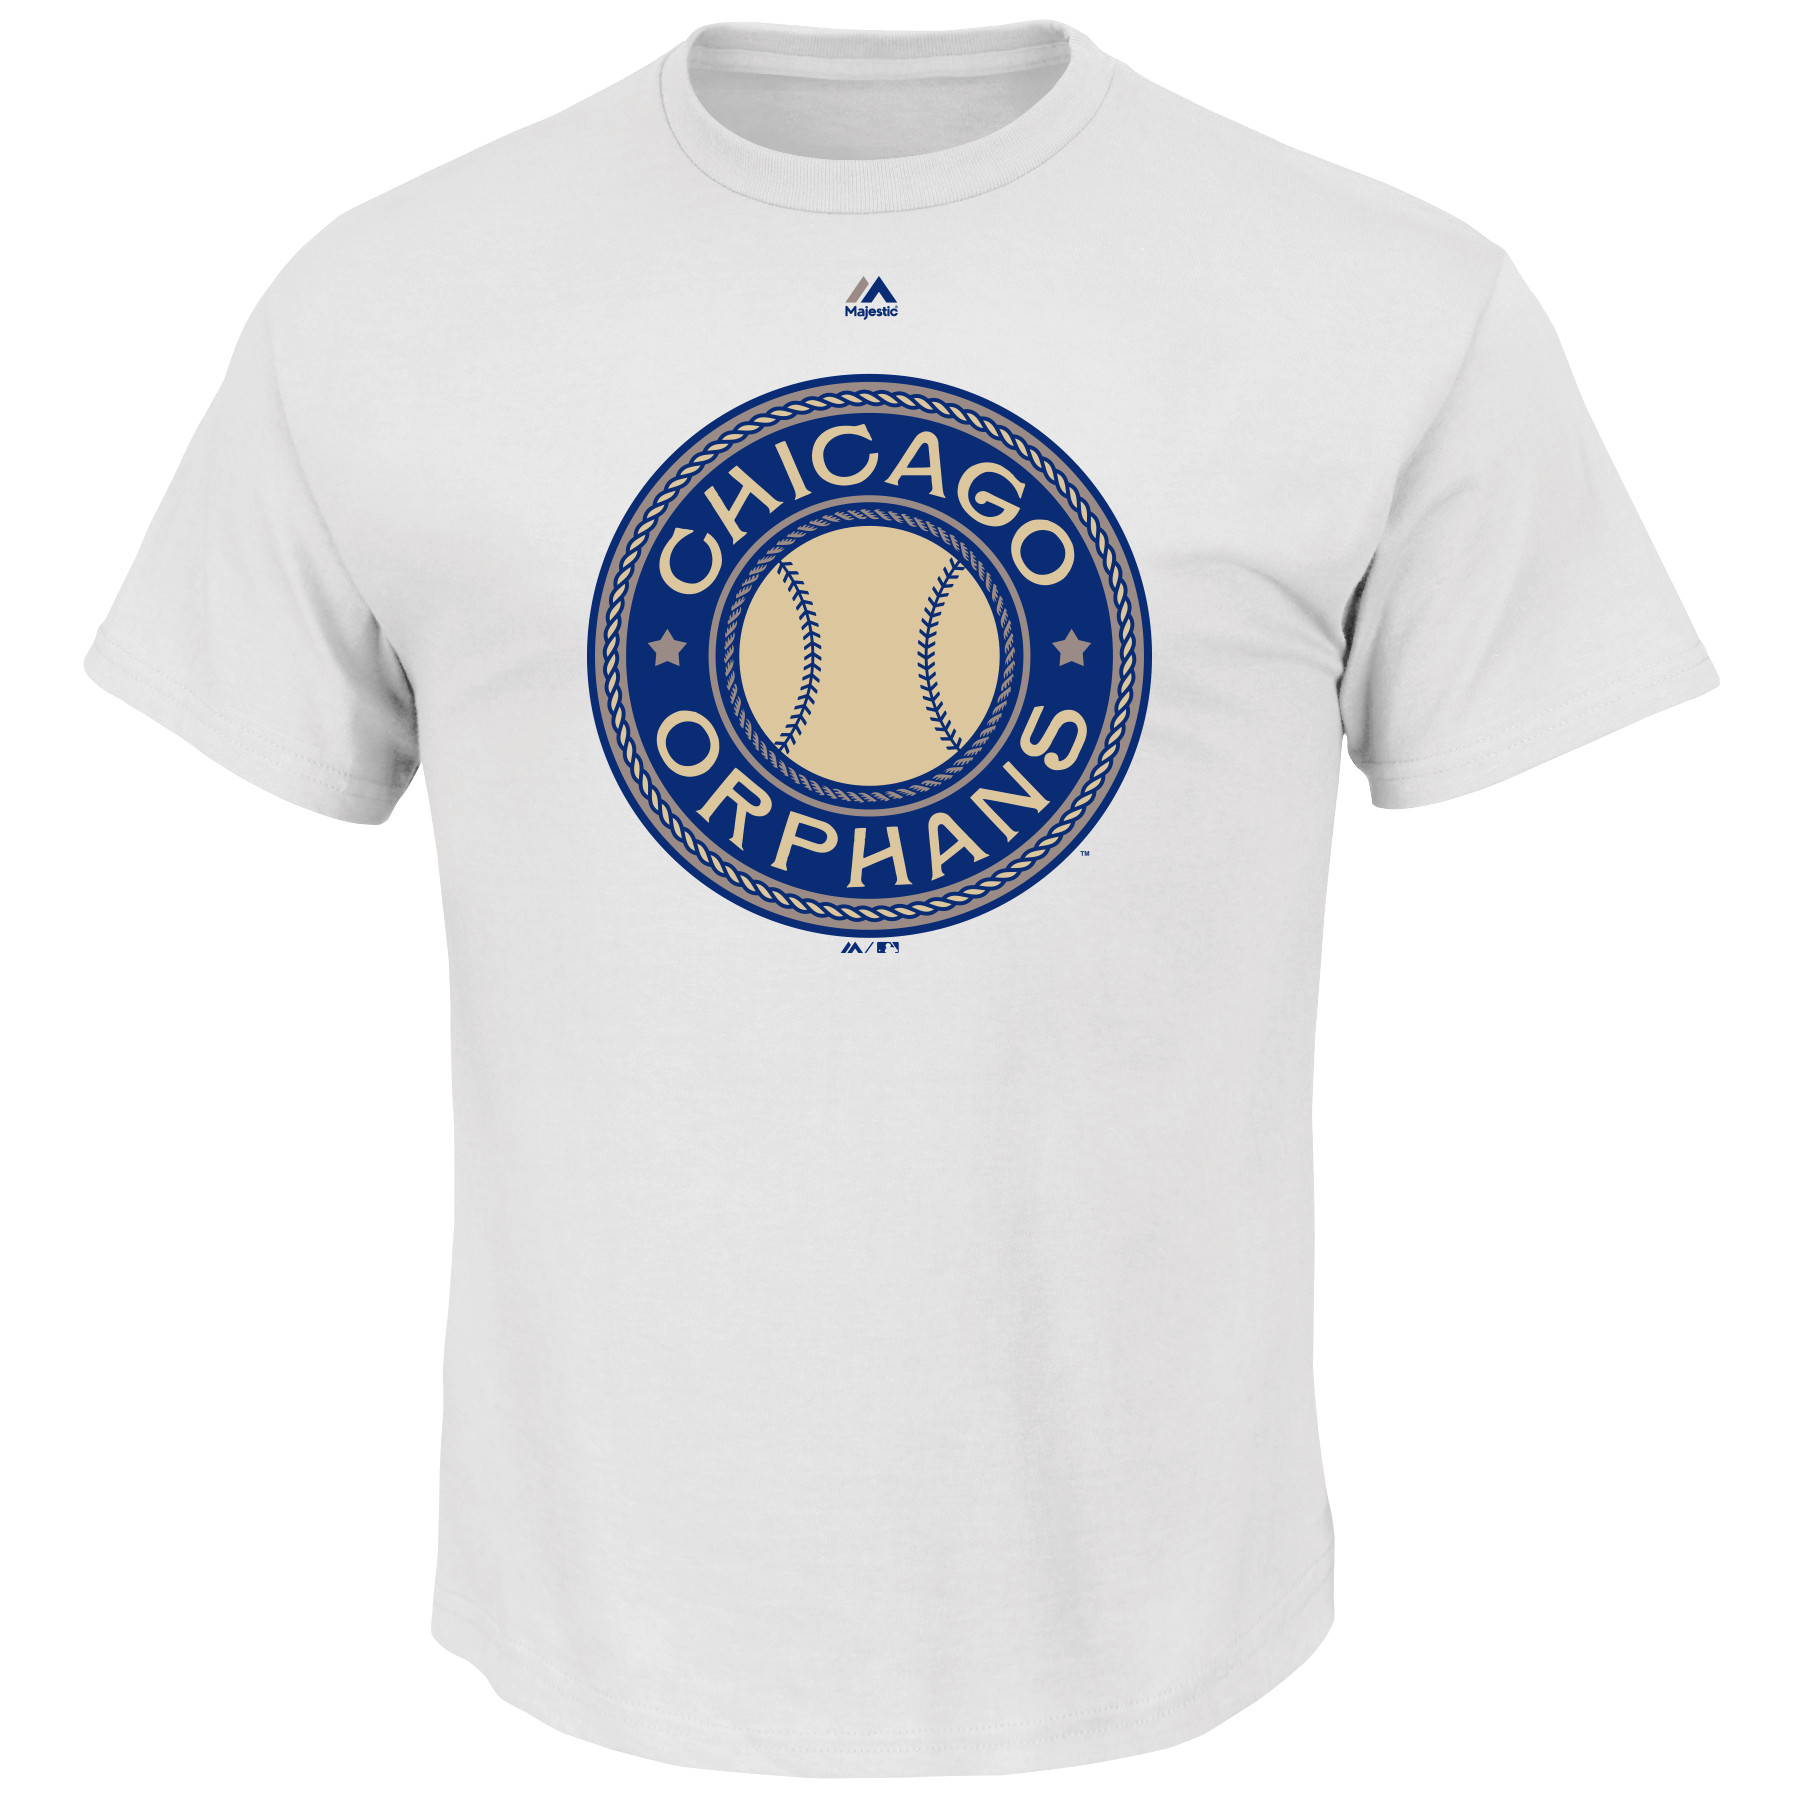 Chicago Cubs Majestic Chicago Orphans Historical Team T-Shirt - White